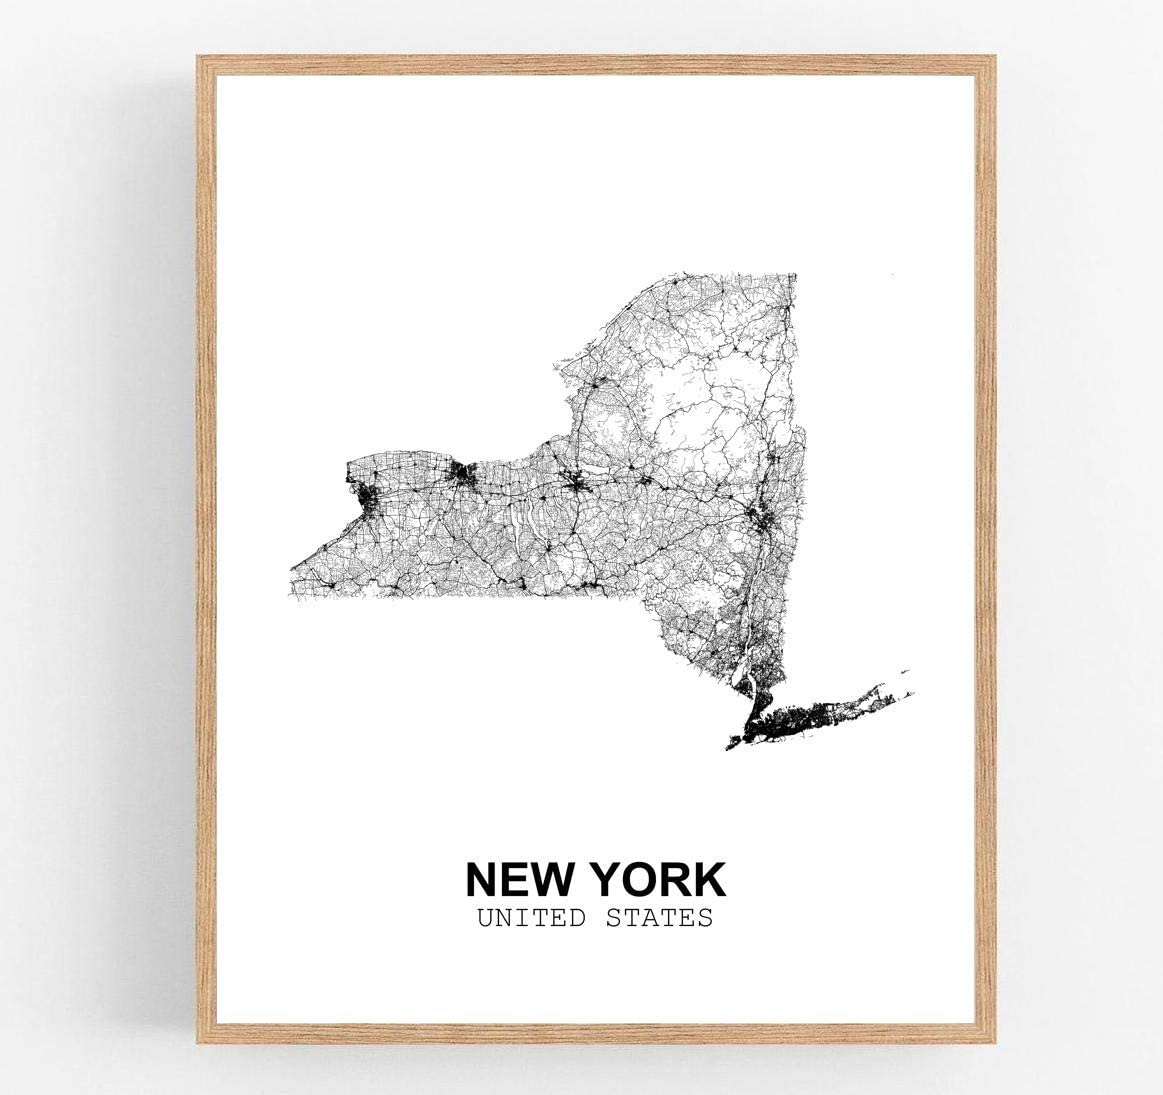 Eleville 8X10 Unframed New York United States Country View Abstract Road Modern Map Art Print Poster Wall Office Home Decor Minimalist Line Art Hometown Housewarming wgn188